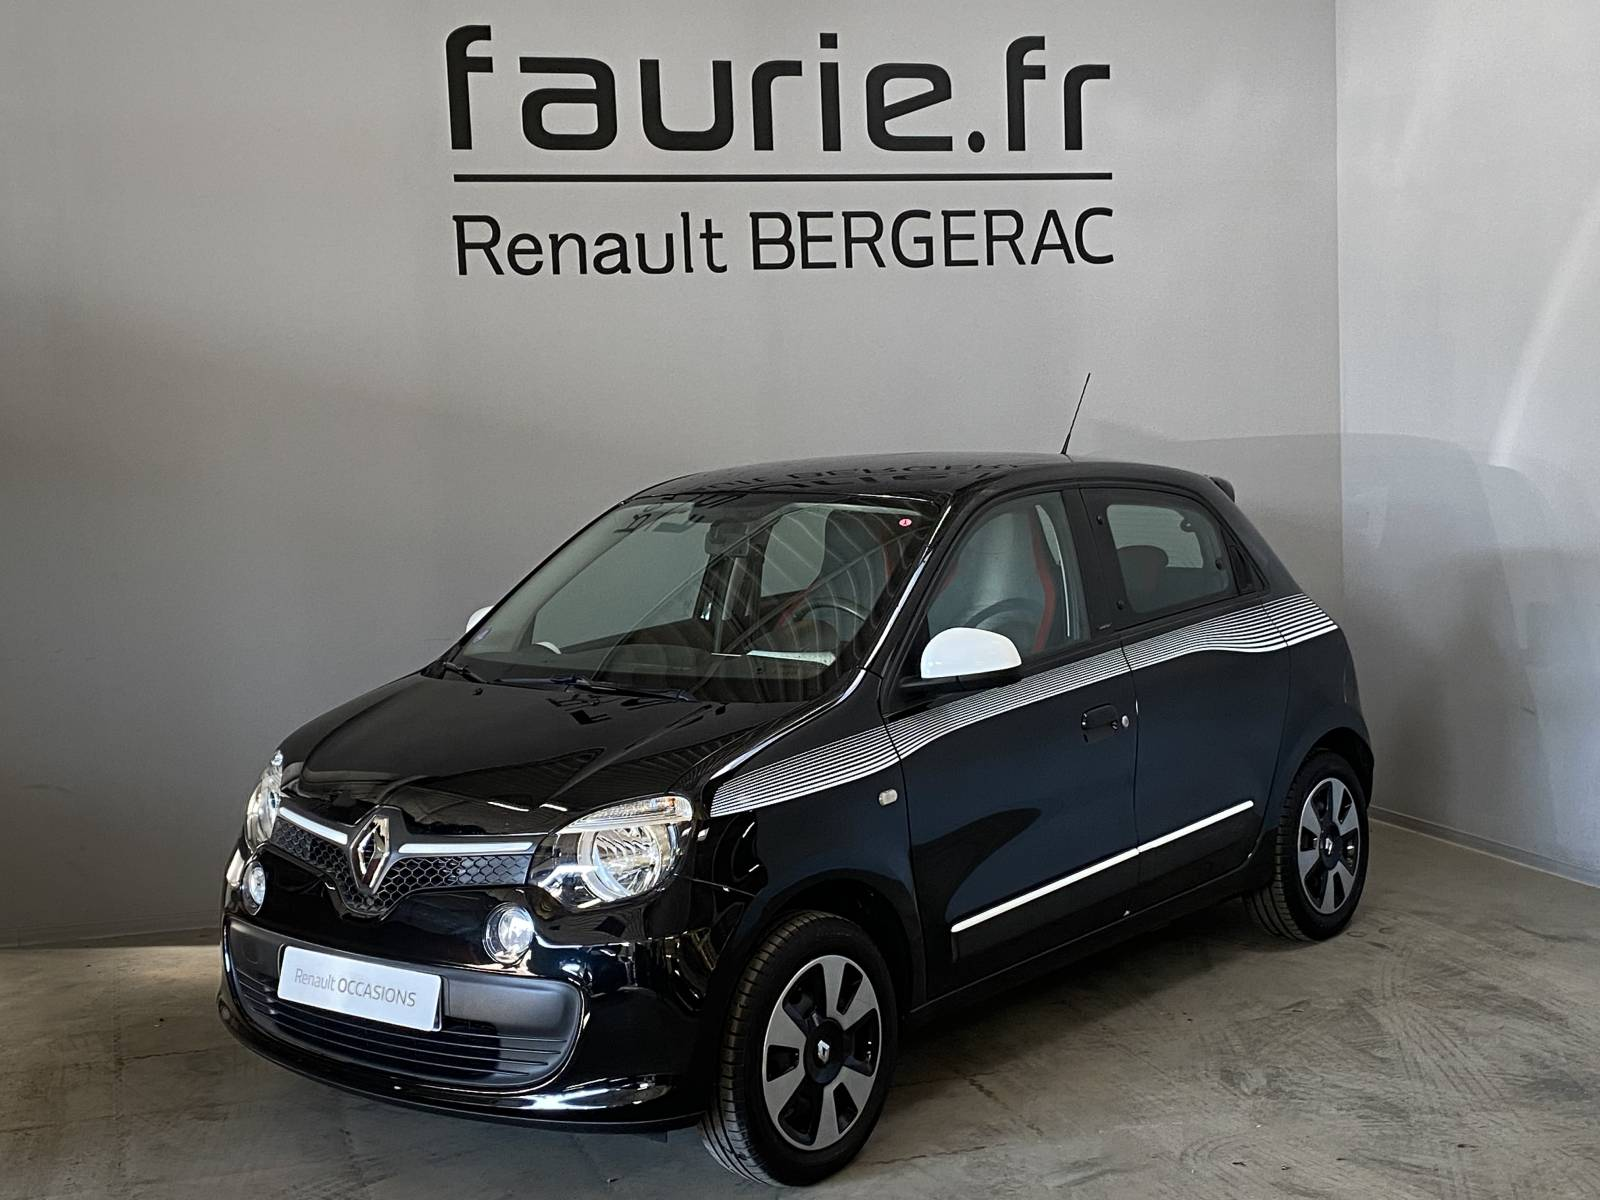 RENAULT Twingo III 0.9 TCe 90 Energy - véhicule d'occasion - Site Internet Faurie - Renault - Faurie Auto Bergerac - 24100 - Bergerac - 1